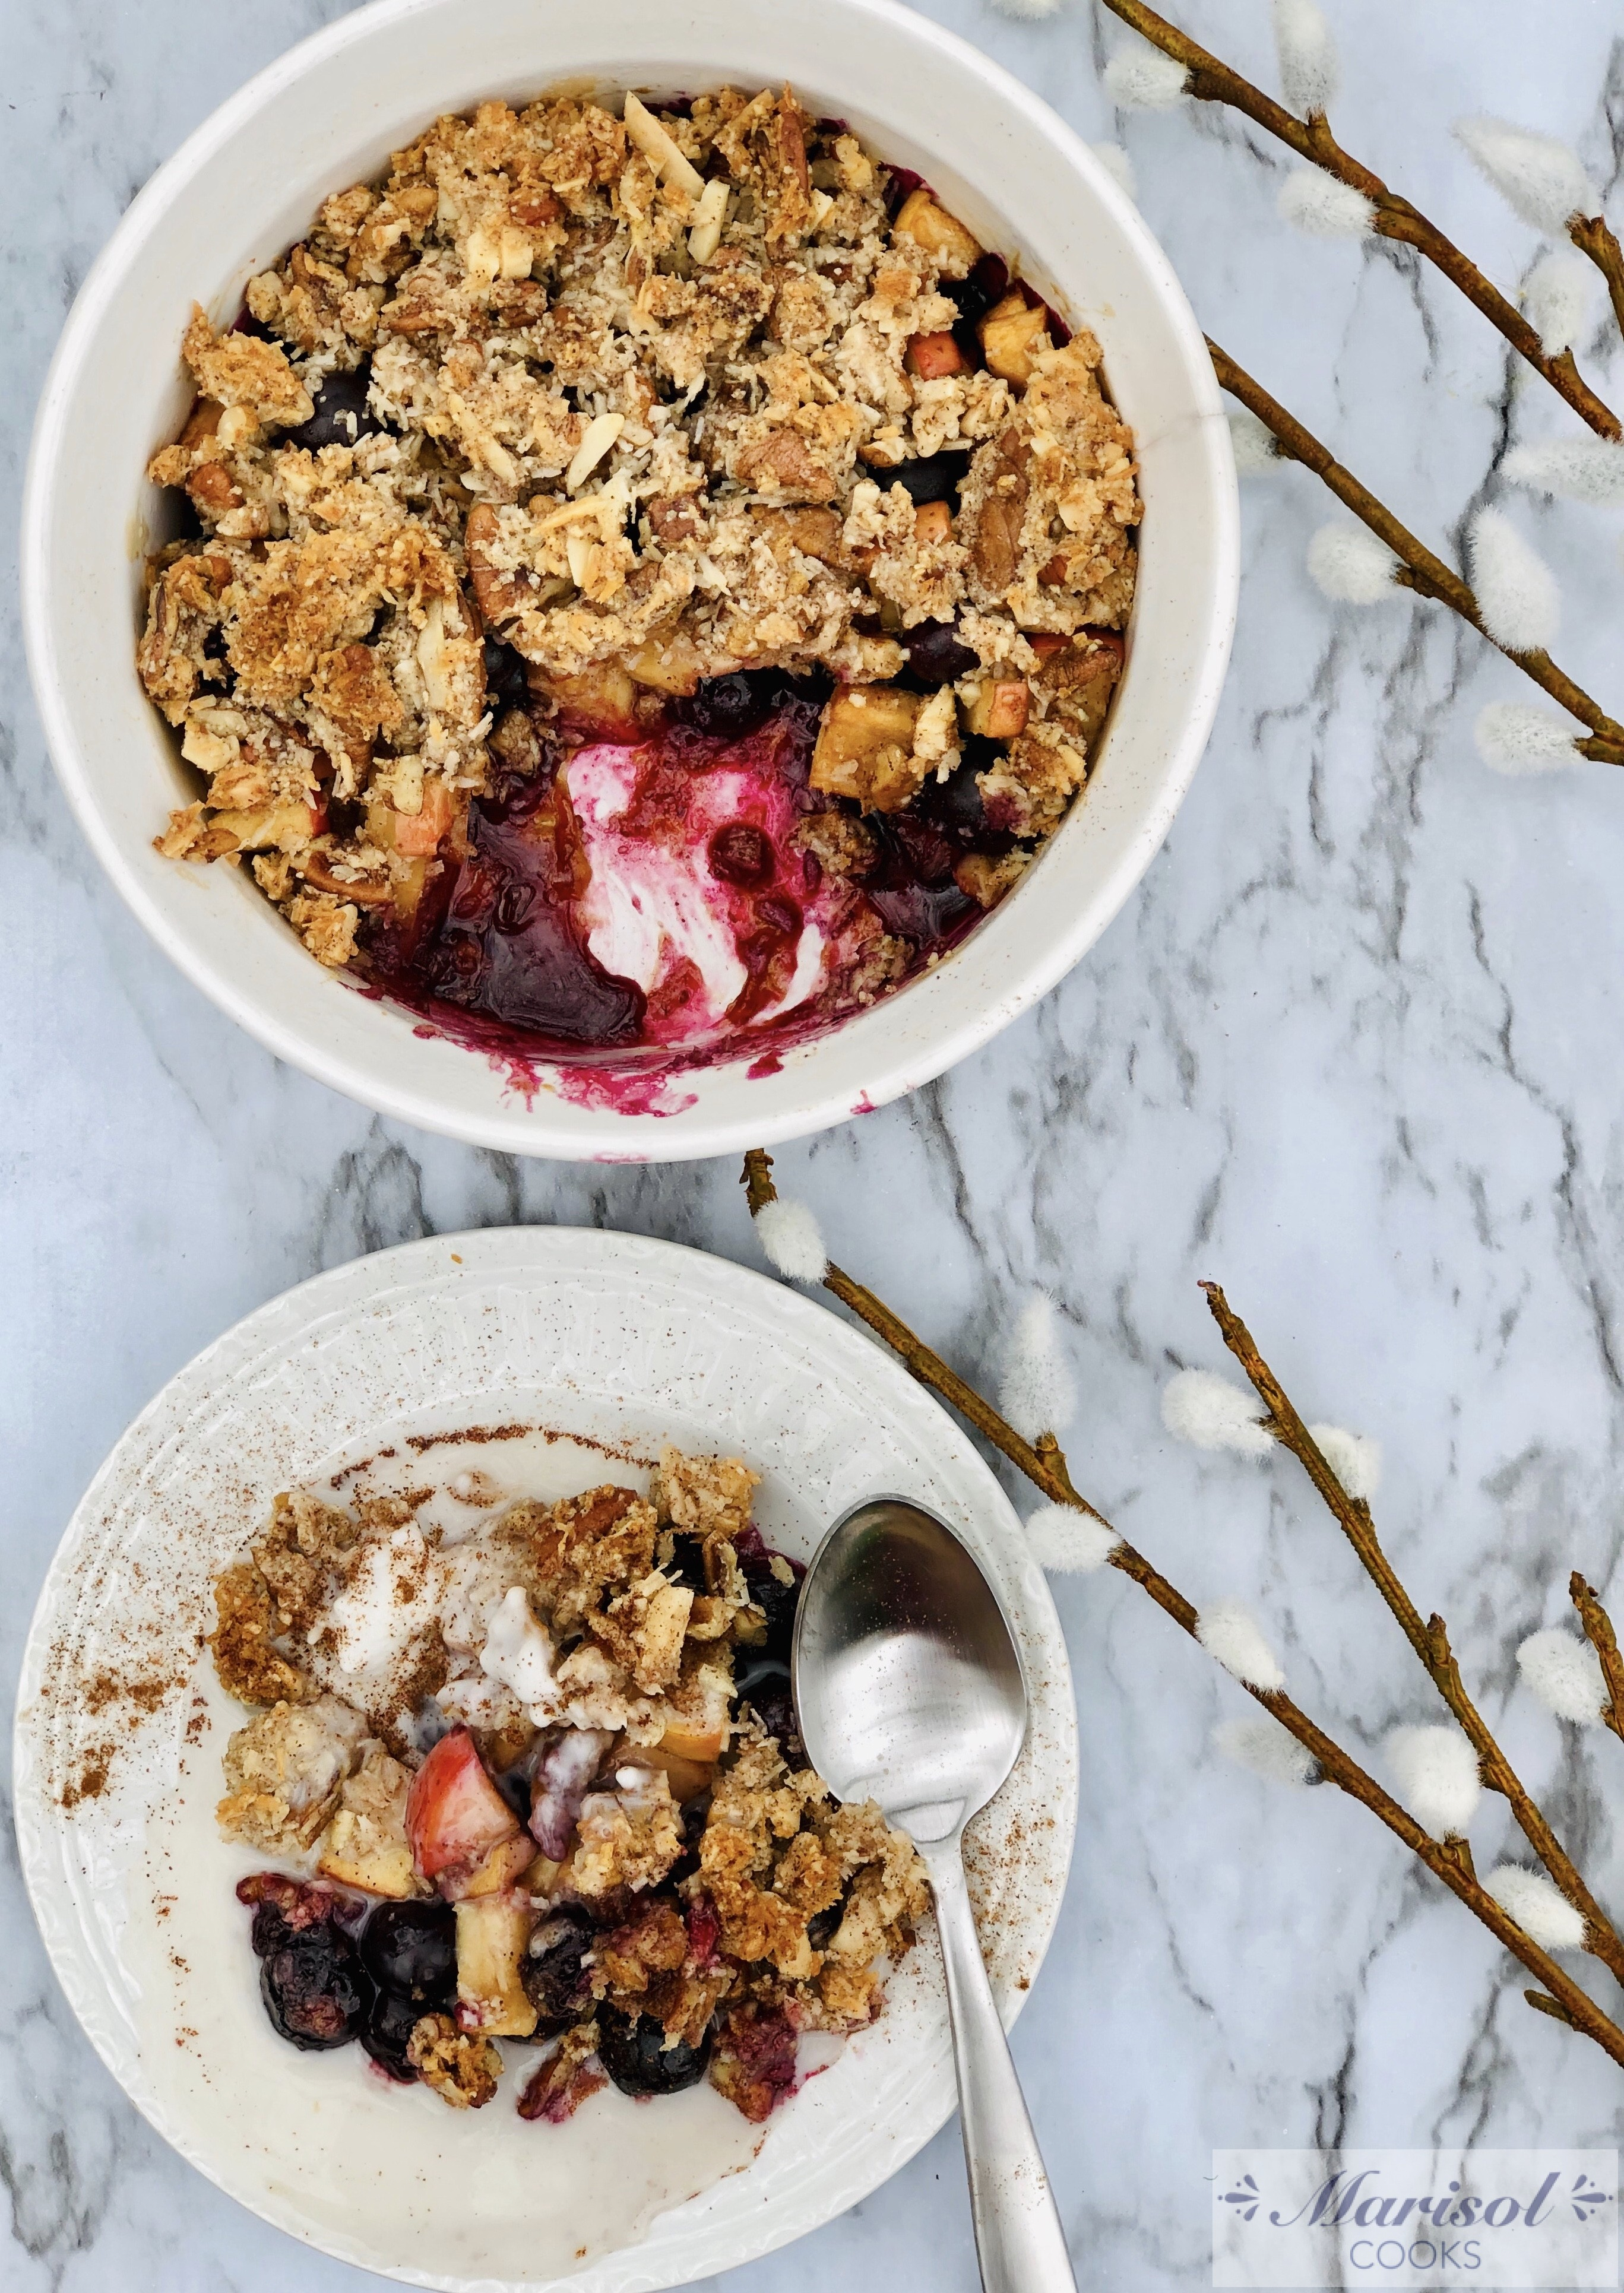 Blueberry and Apple Crumble